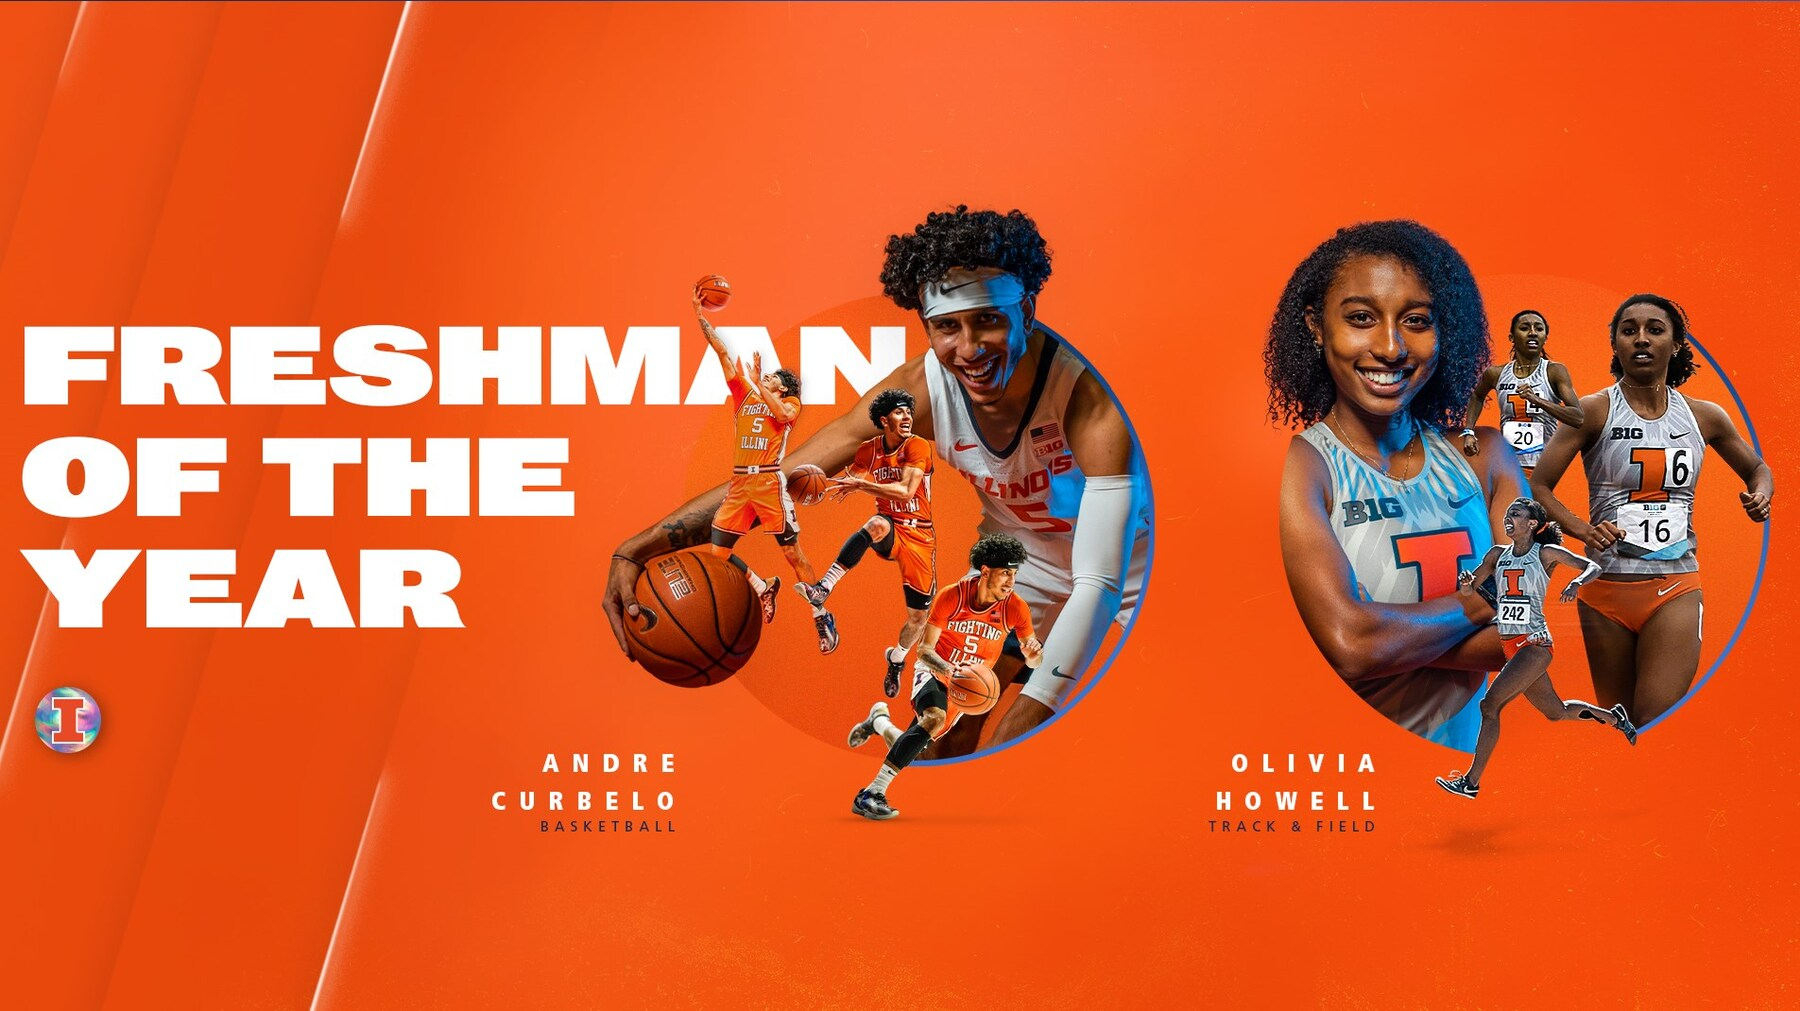 action pictures  of the winners used in a graphic announcing Freshman of the Year honors